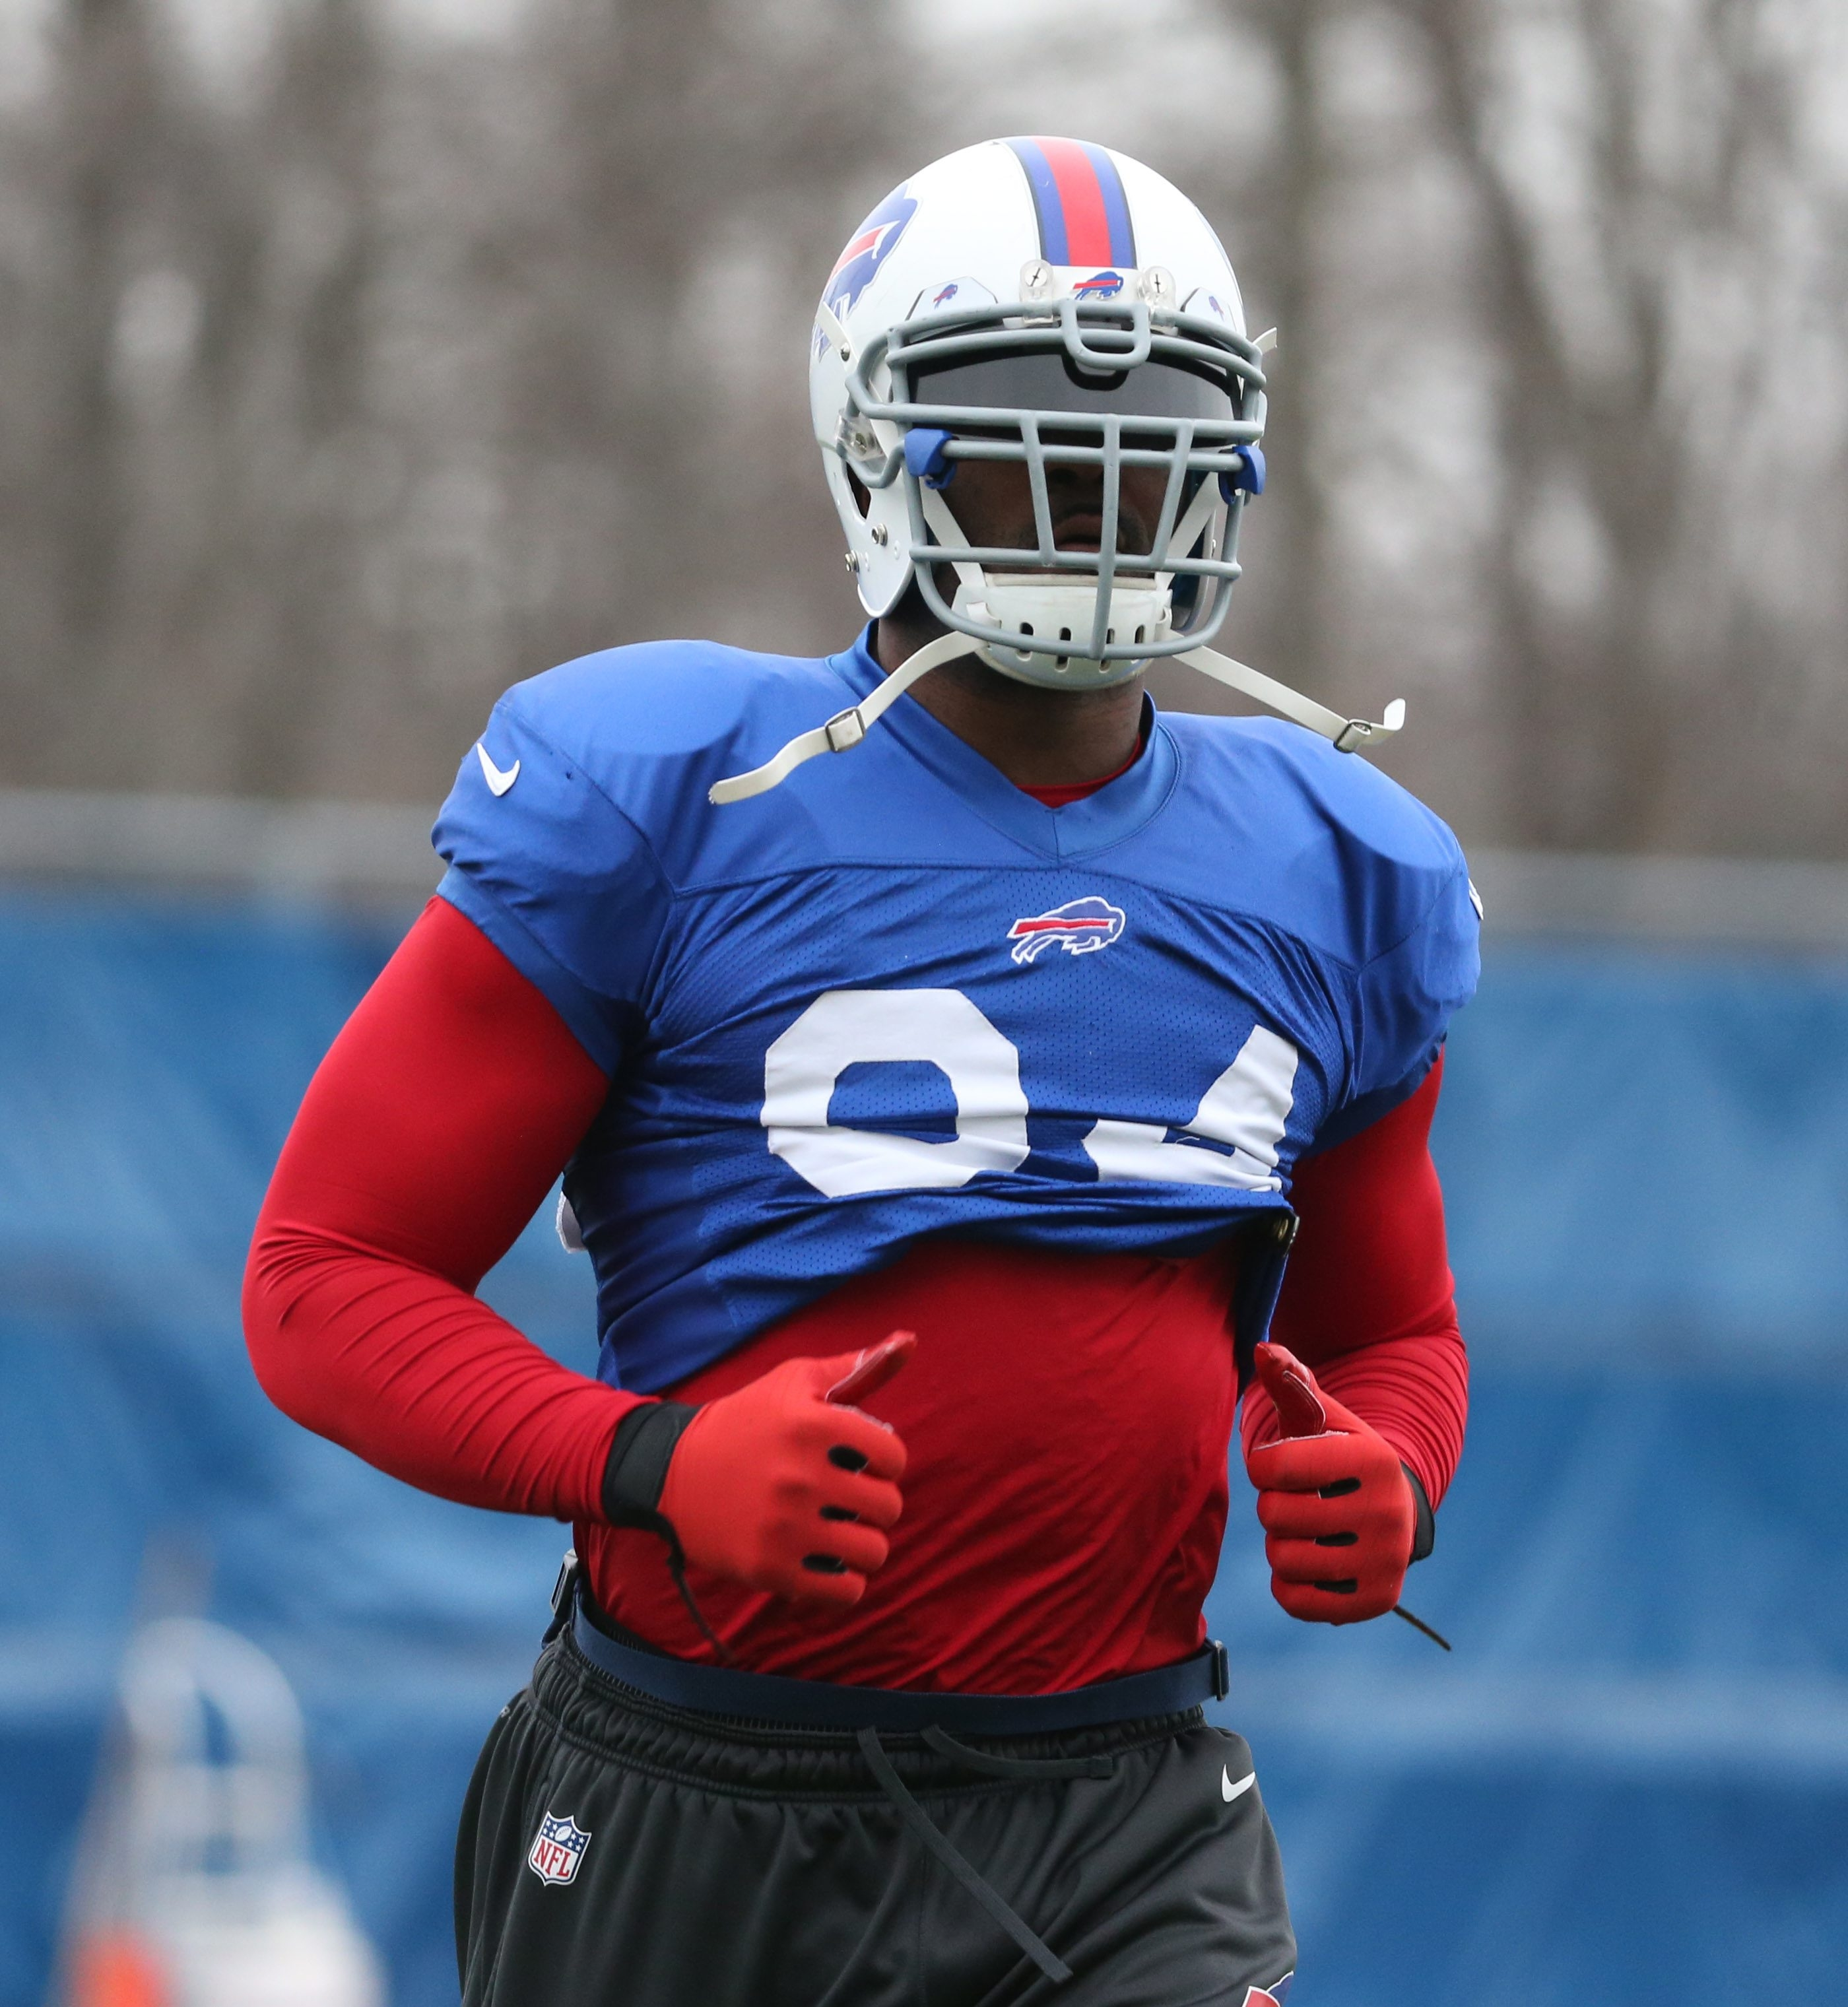 Bills defensive end Mario Williams says he is still getting used to the schemes used by Rex Ryan's coaching staff.